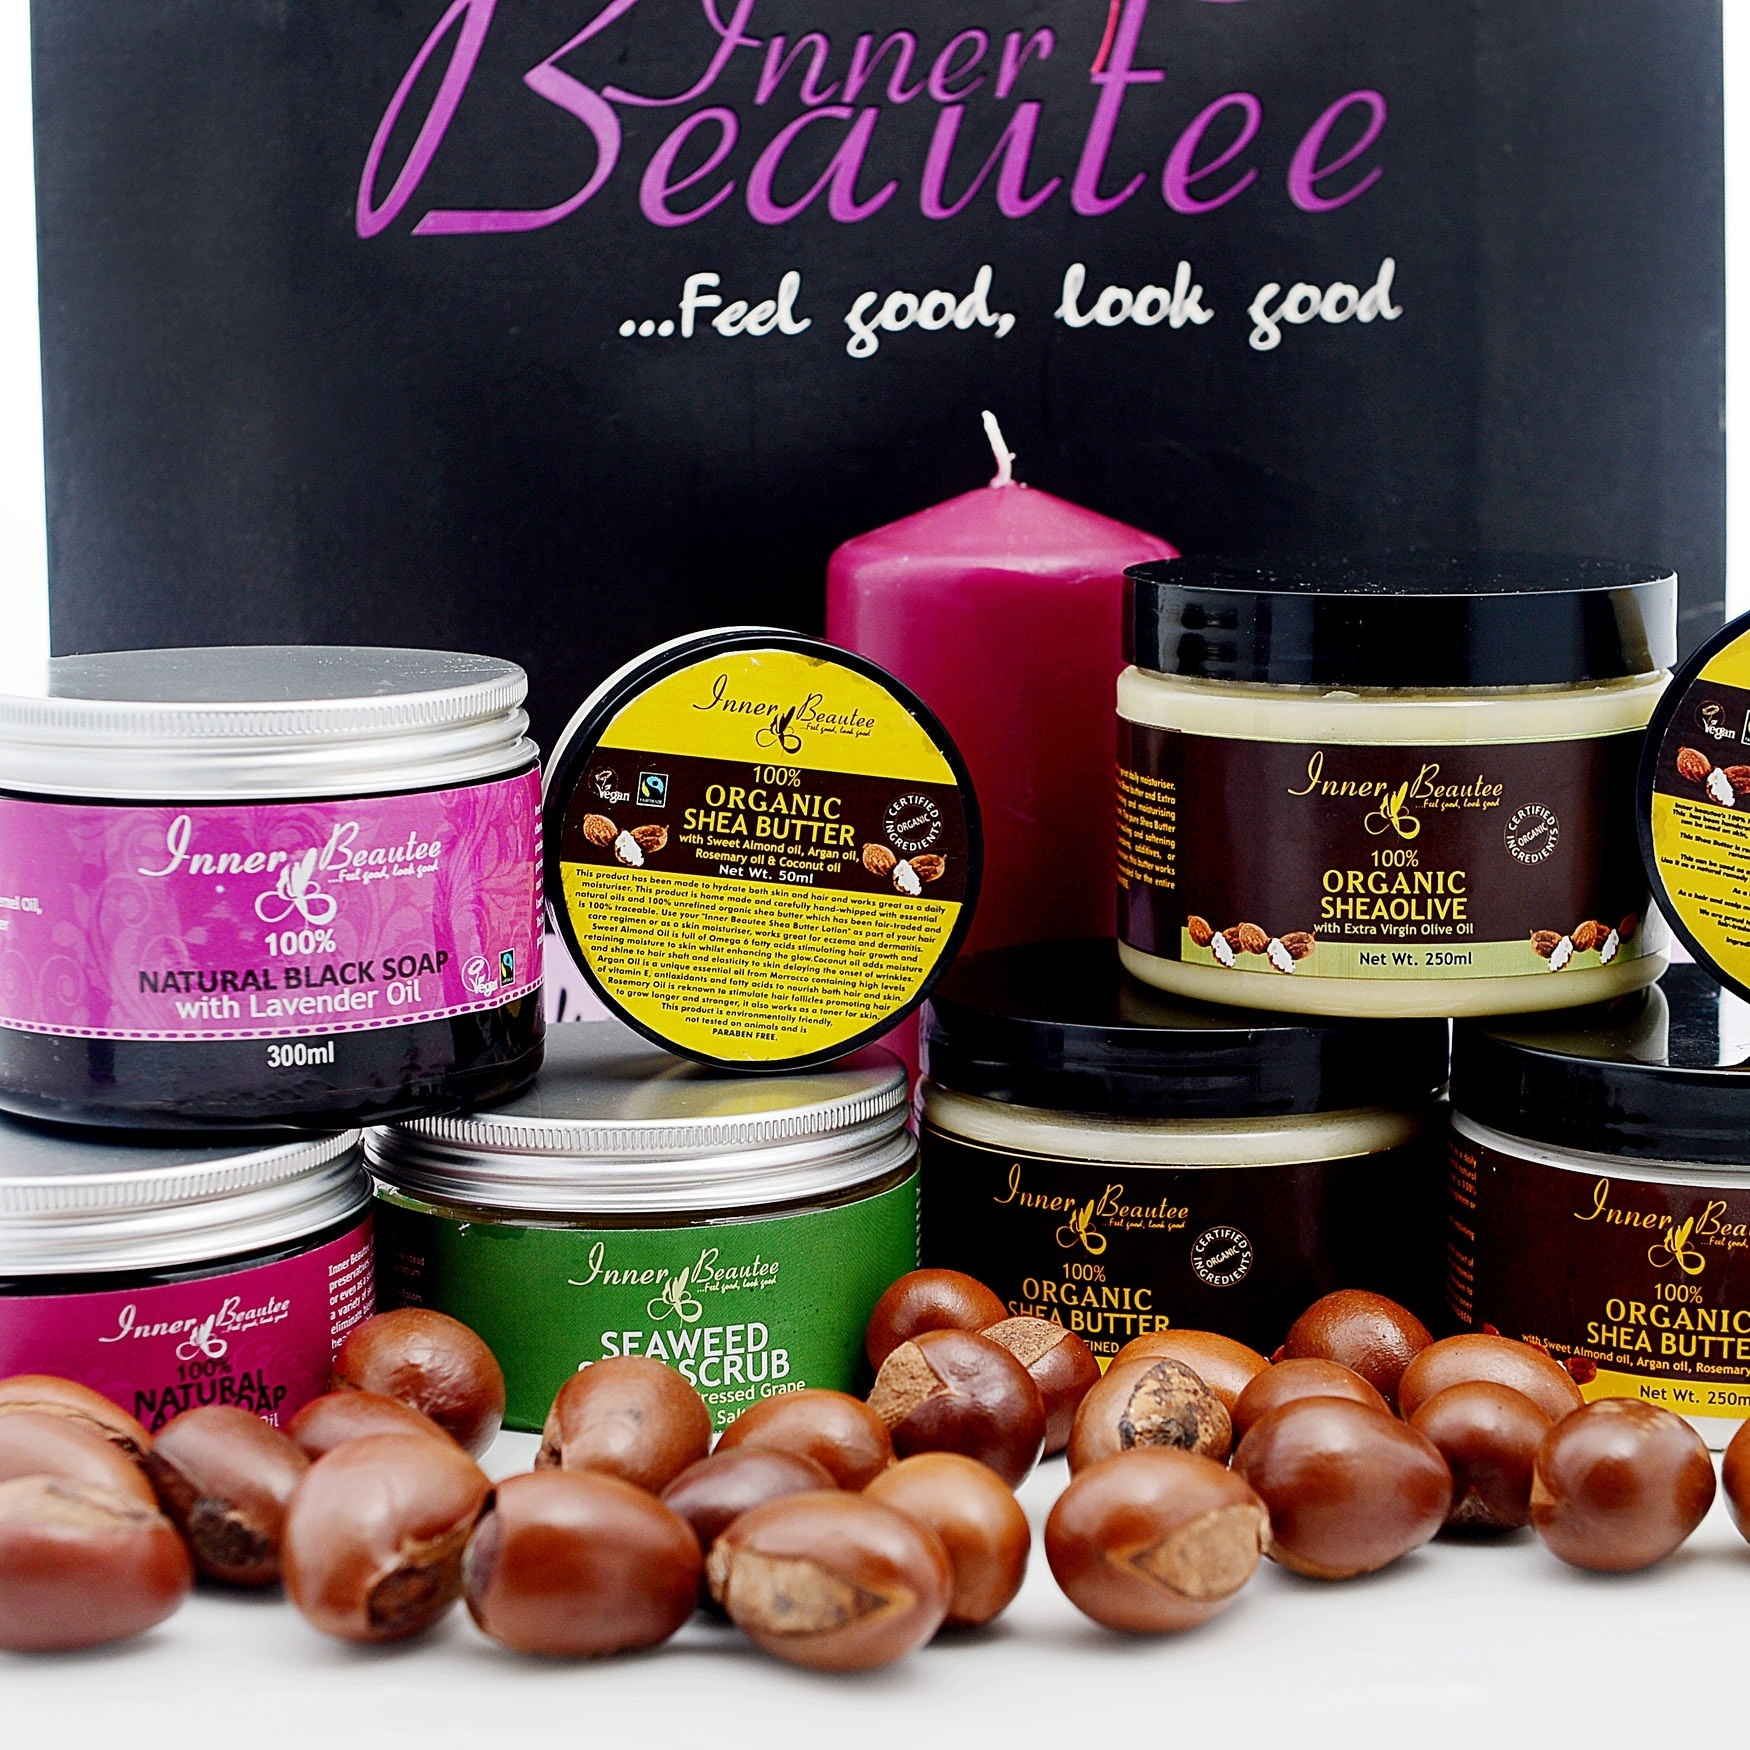 IF YOU WANT NATURAL HAIR & SKINCARE PRODUCTS IN LAGOS, TRY INNER BEAUTEE